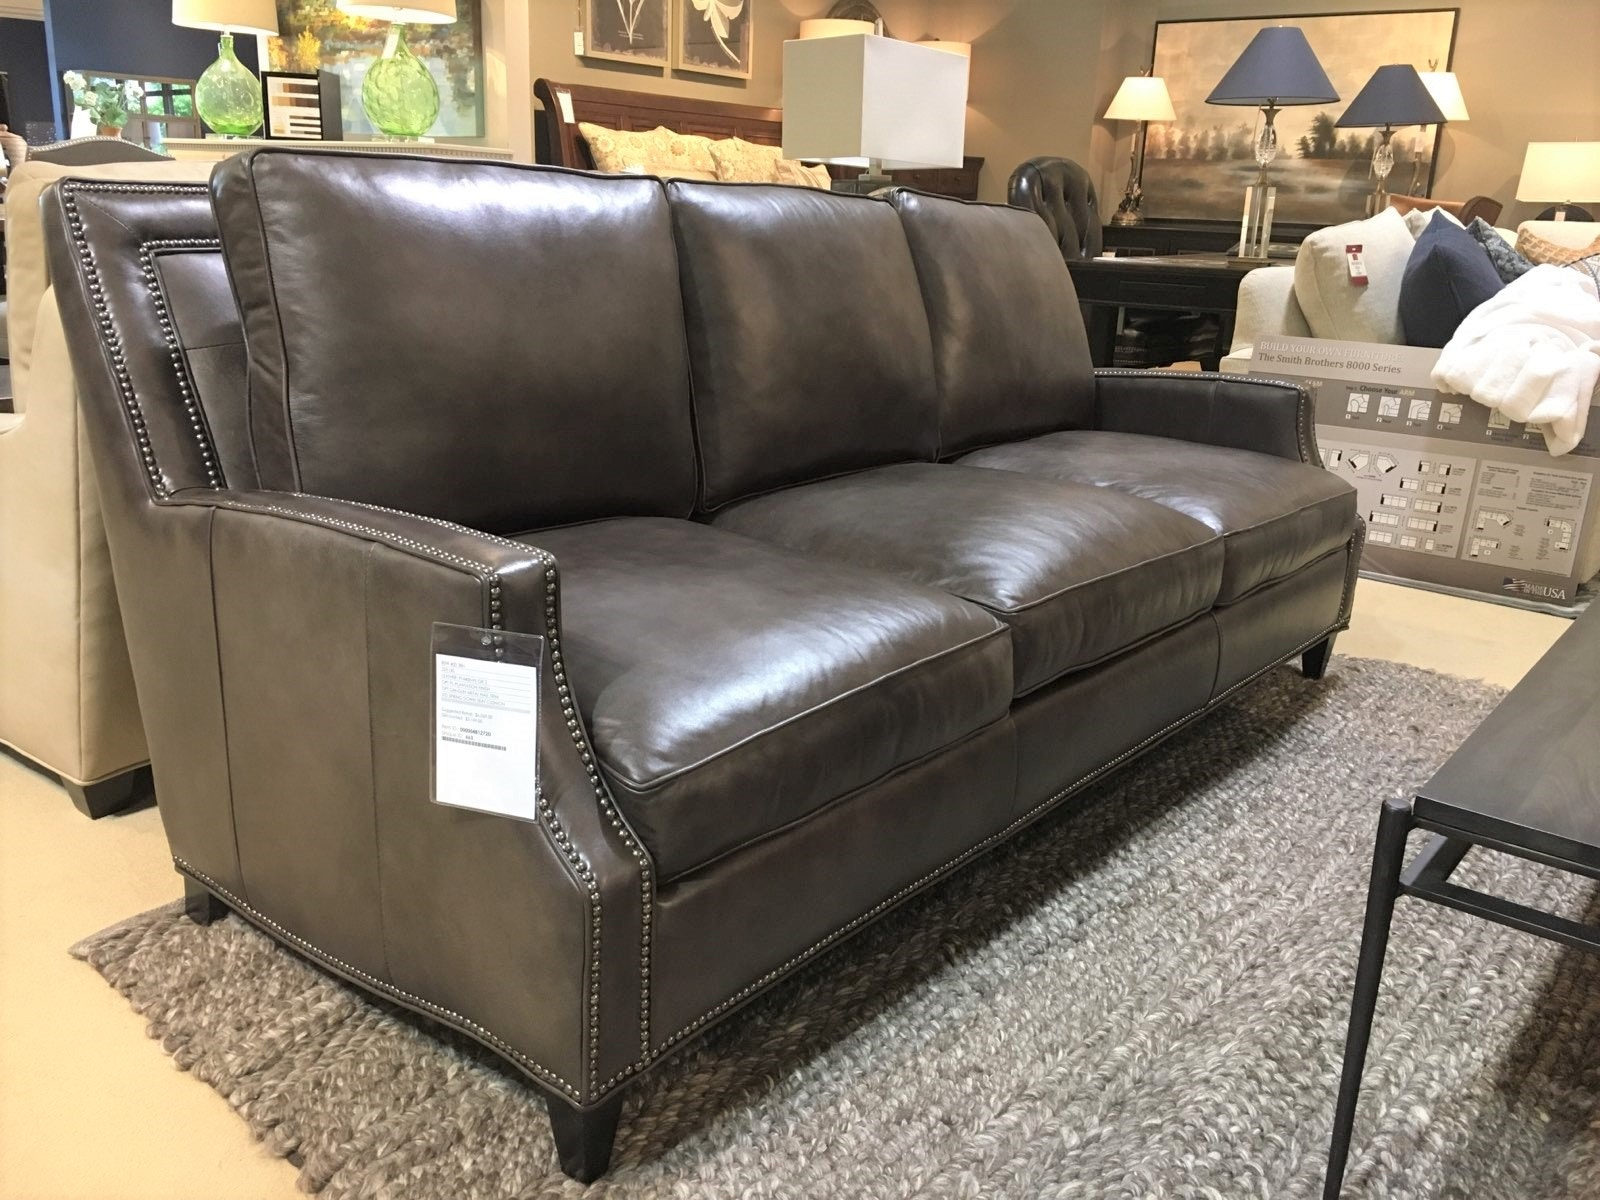 leather living room furniture clearance italian ideas bradington young 769 95plgm howe sofa goods in charlotte